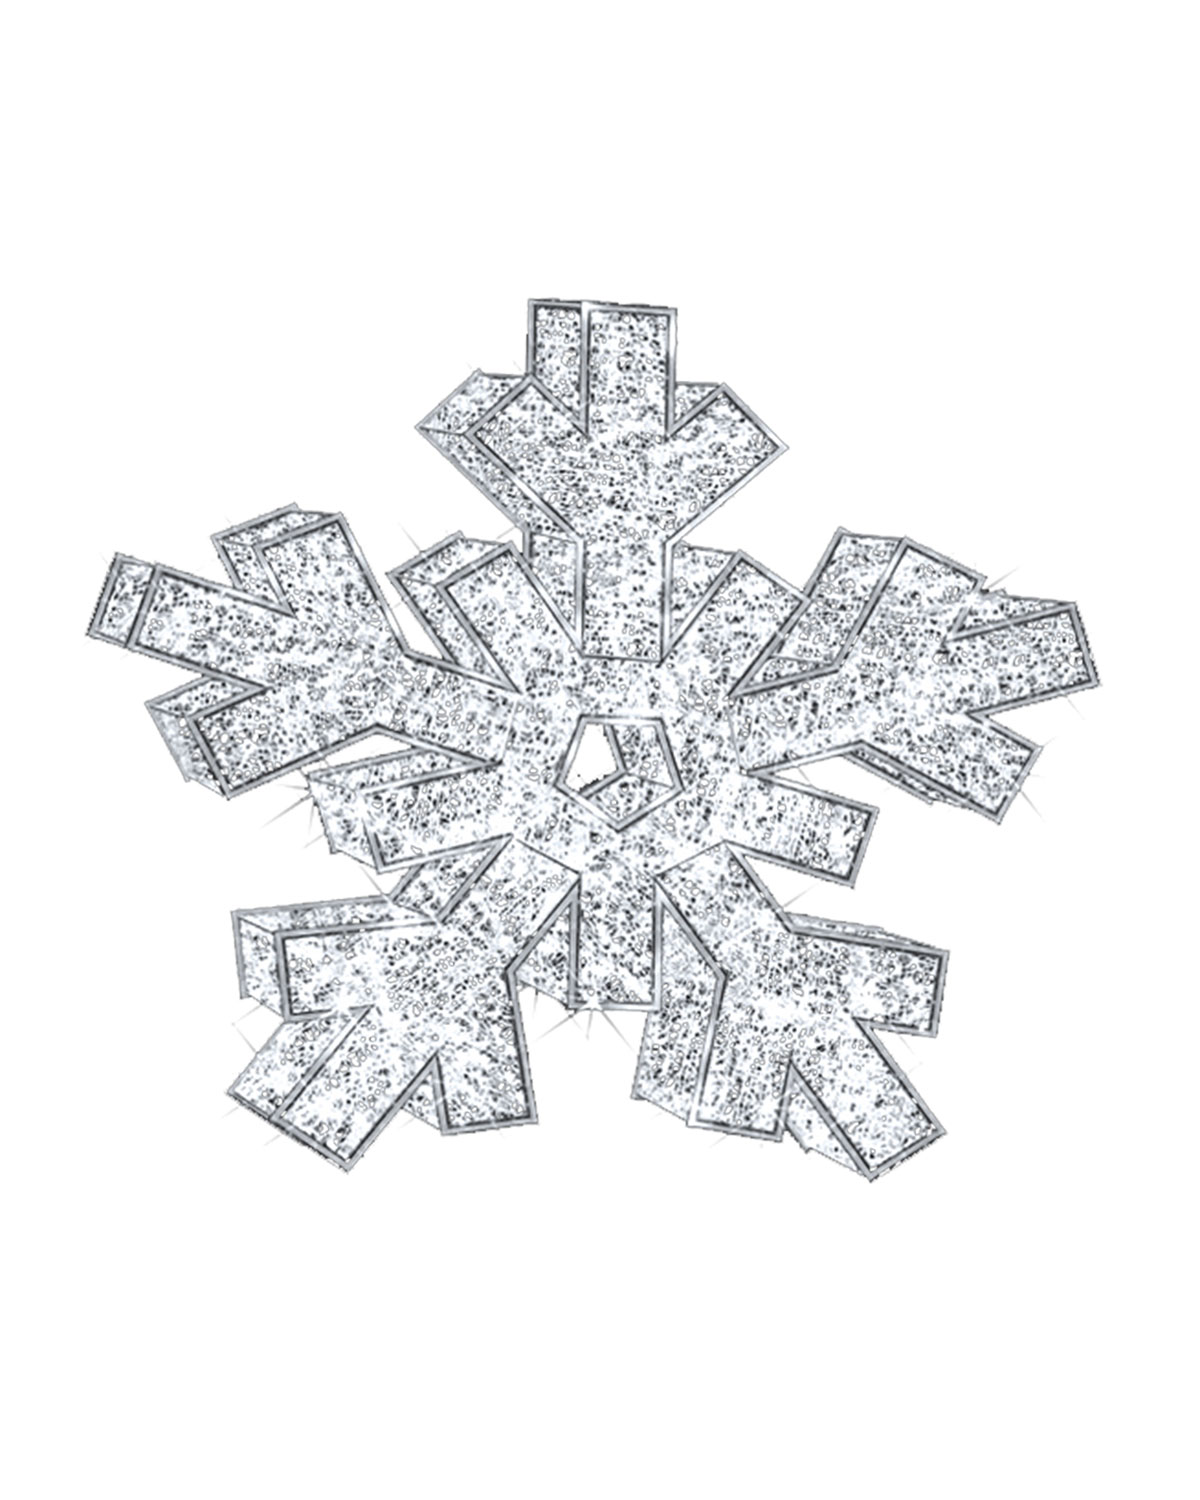 3D Snowflake with Lights Indoor Christmas Decoration